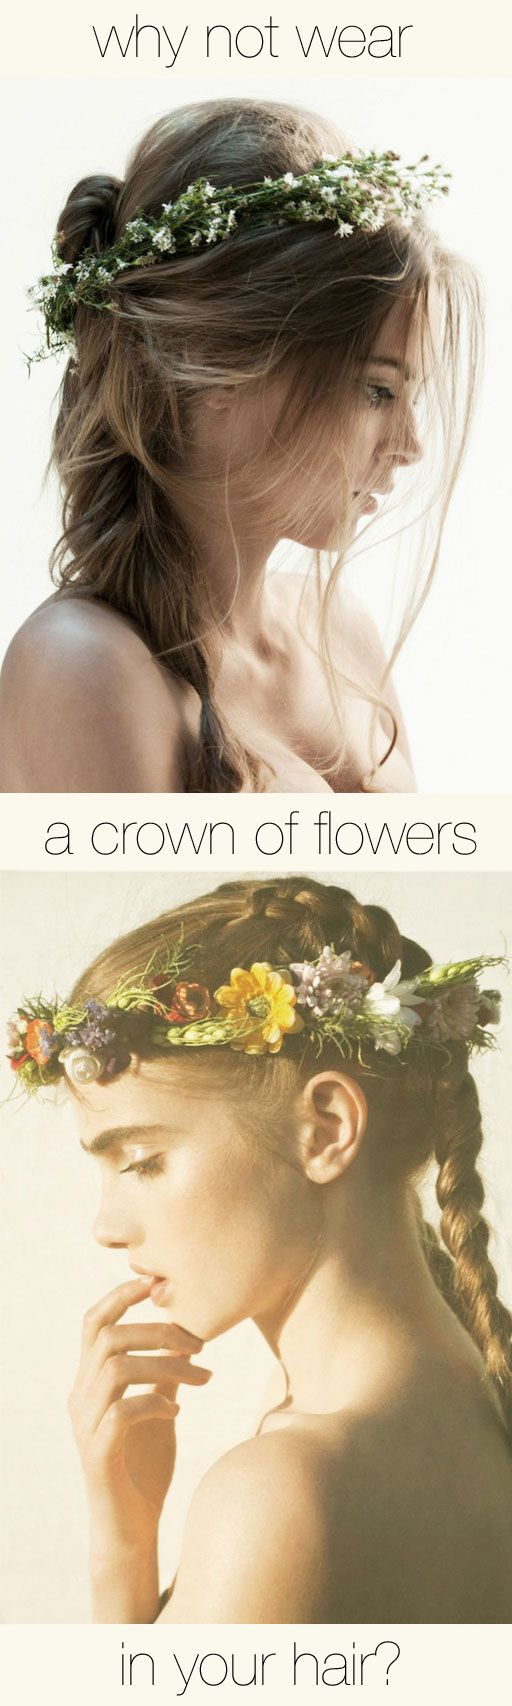 Flower crowns ♥